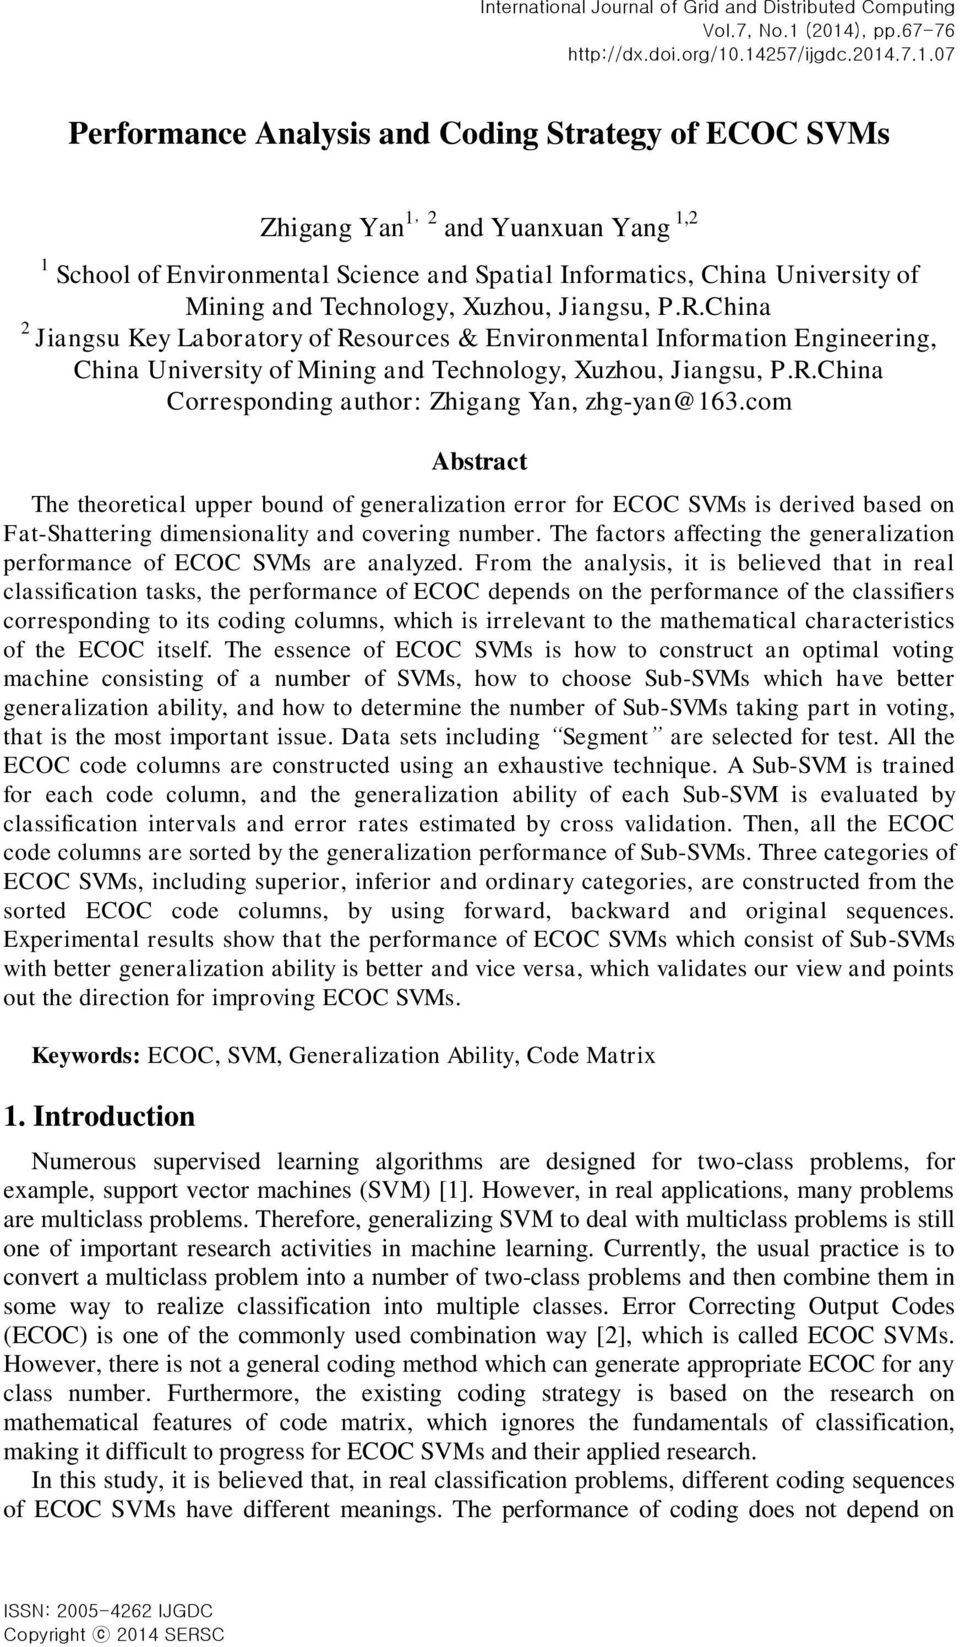 76 http://dx.do.org/0.457/jgdc.04.7..07 Performance Analyss and Codng Strategy of ECOC SVMs Zhgang Yan, and Yuanxuan Yang, School of Envronmental Scence and Spatal Informatcs, Chna Unversty of Mnng and Technology, Xuzhou, Jangsu, P.